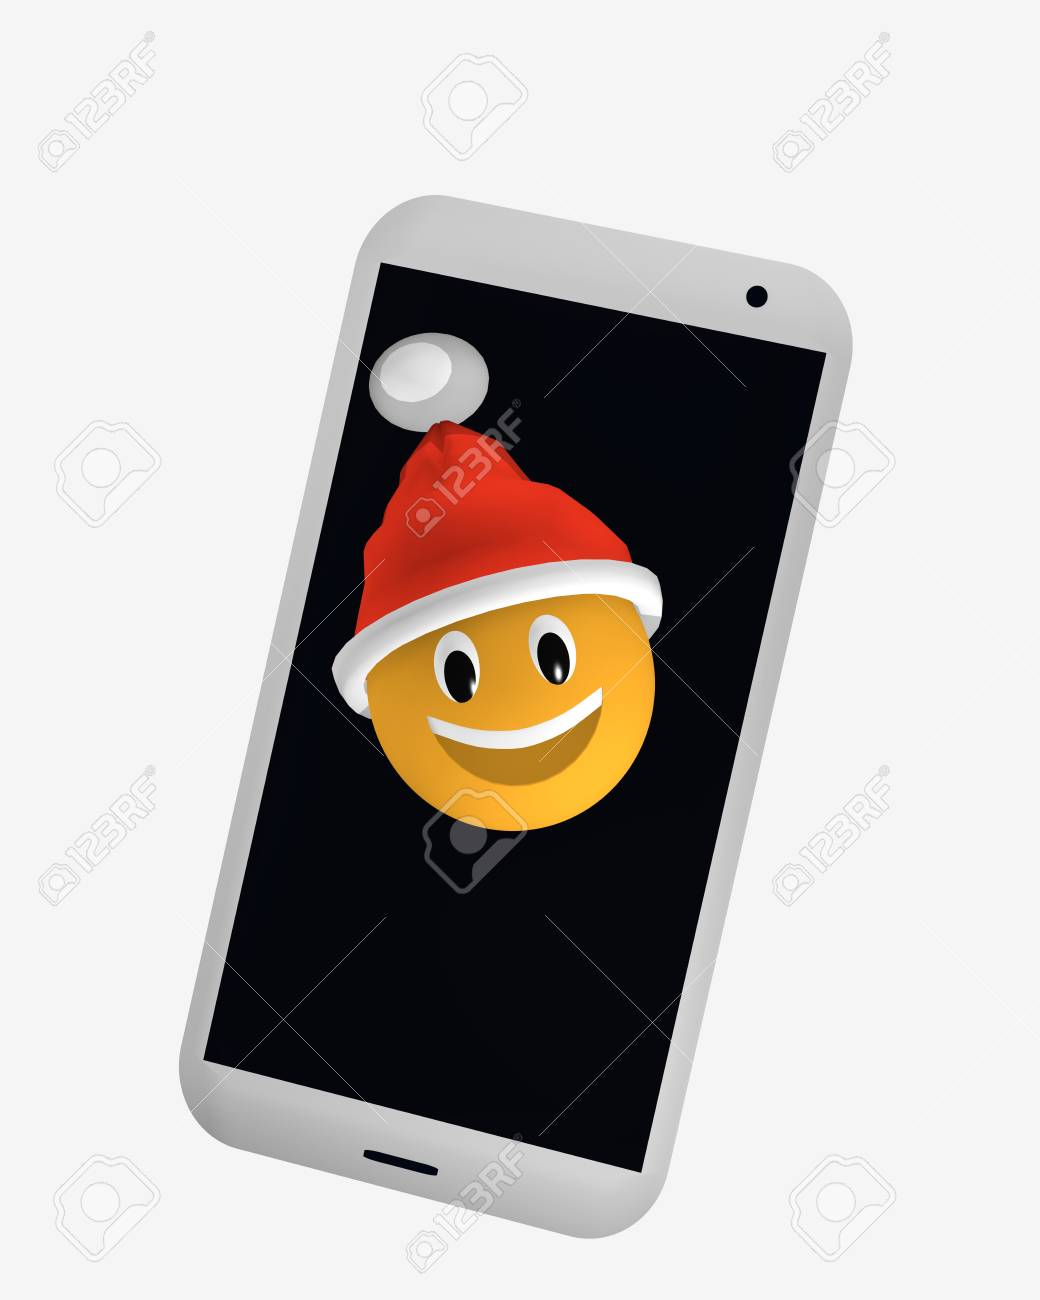 Emoticon with Santa hat looks from the screen of a cellphone 3d rendering Standard-Bild - 91860049